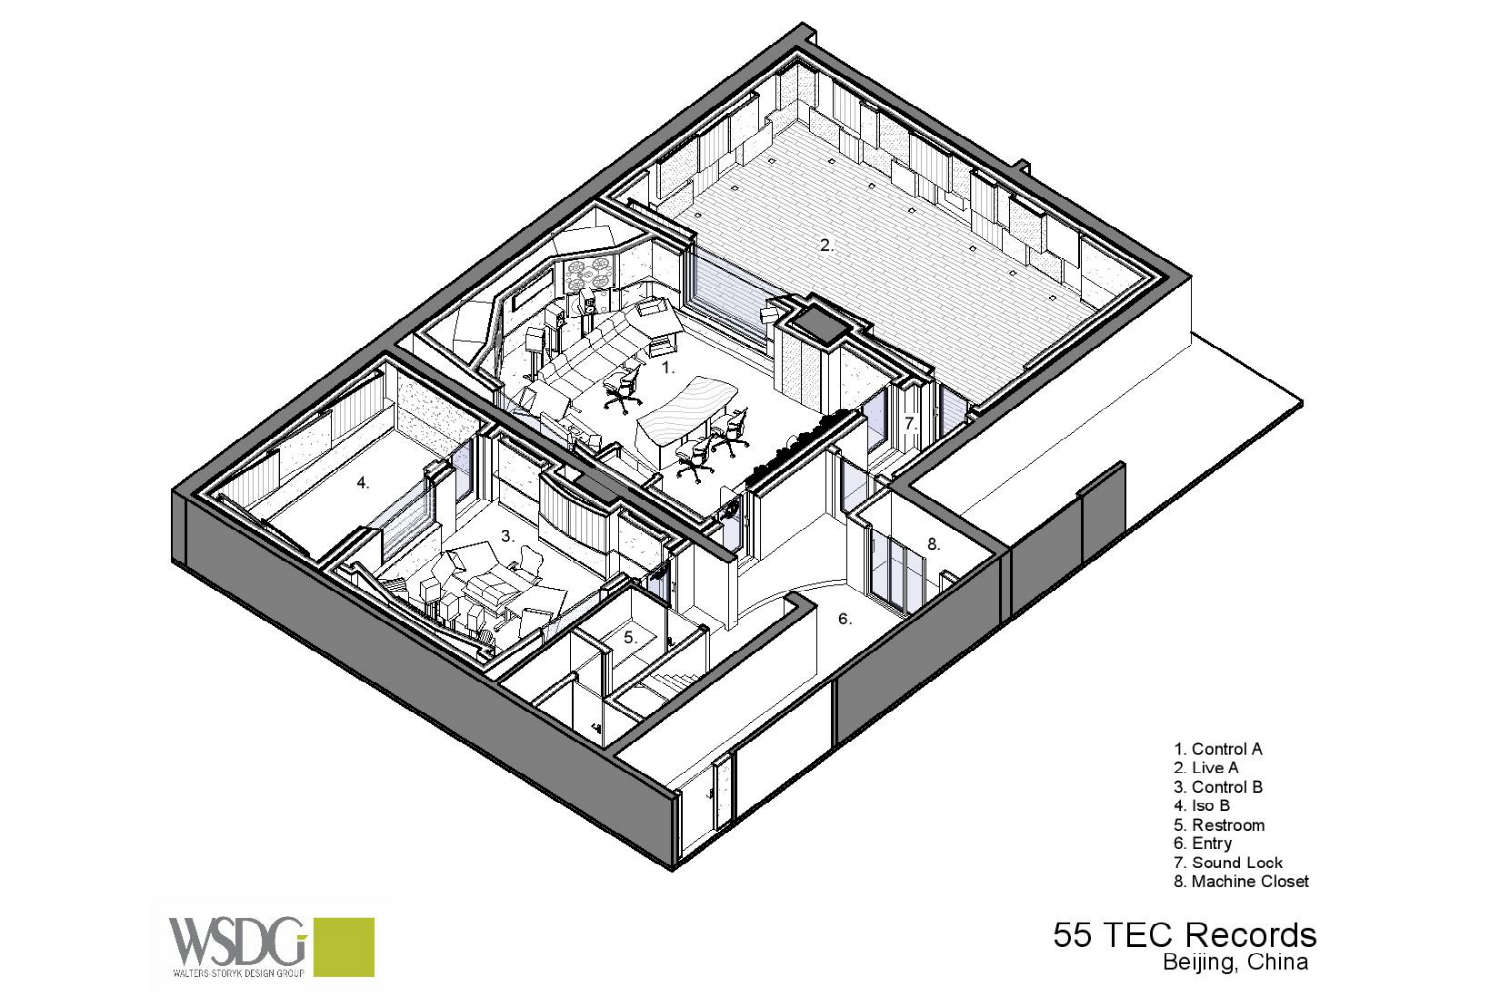 55TEC Studio in Beijing, China. Presentation Drawing